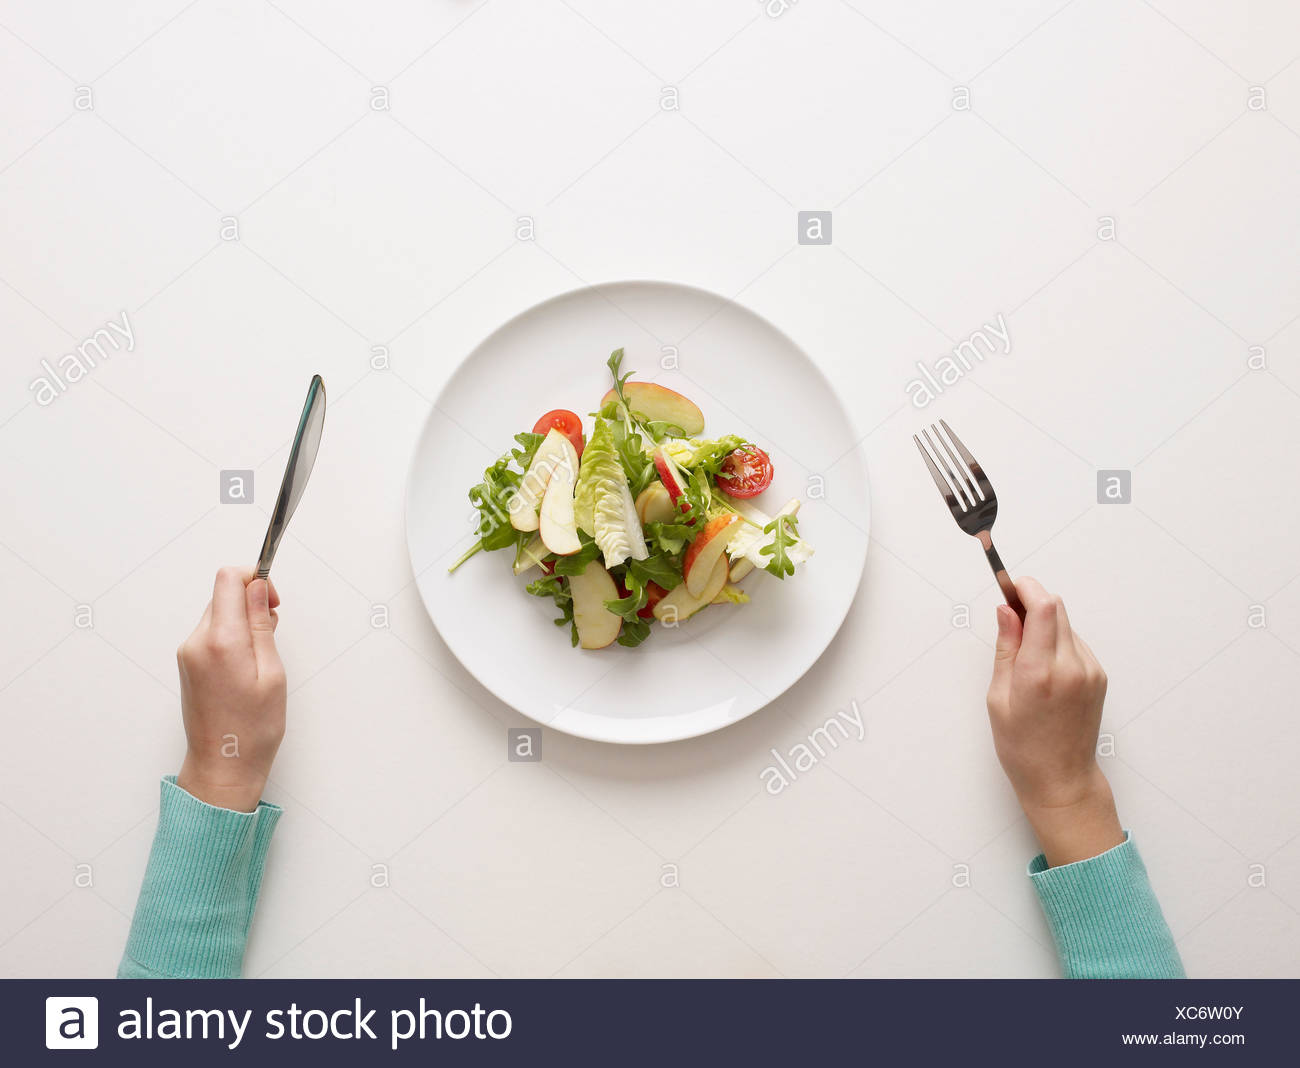 Hands by a plate of salad - Stock Image